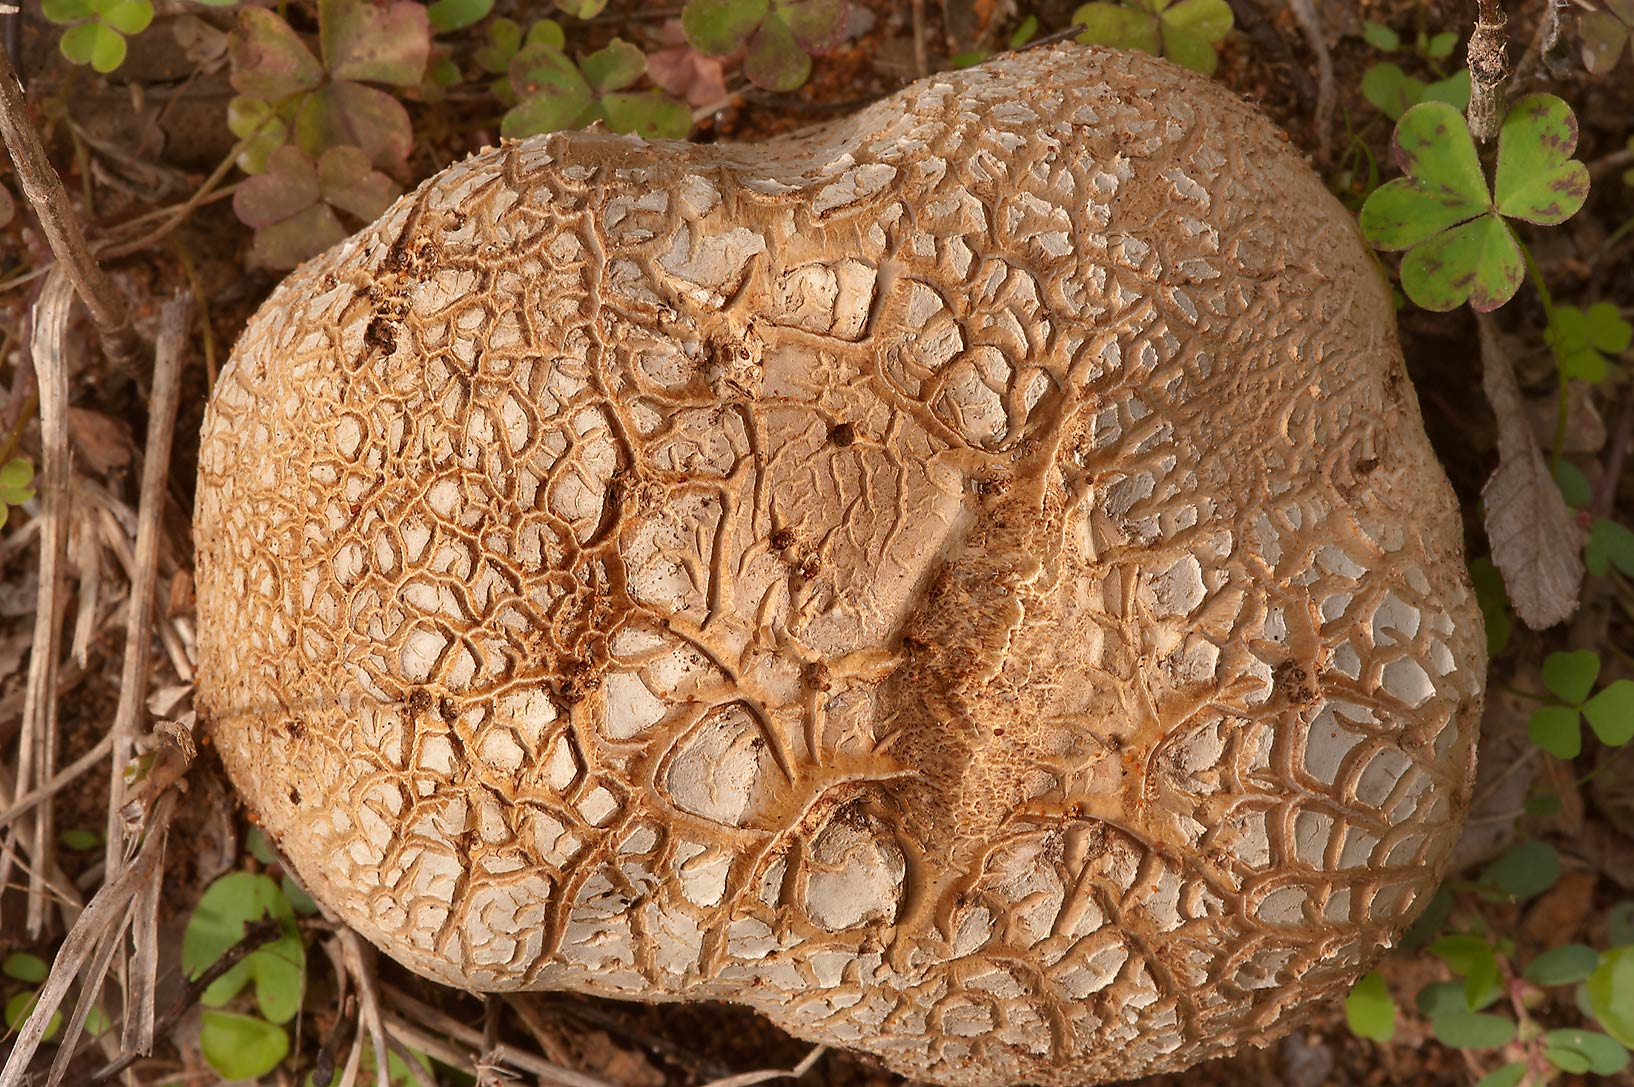 Cracked surface of tuff puffball mushroom...Creek Park. College Station, Texas